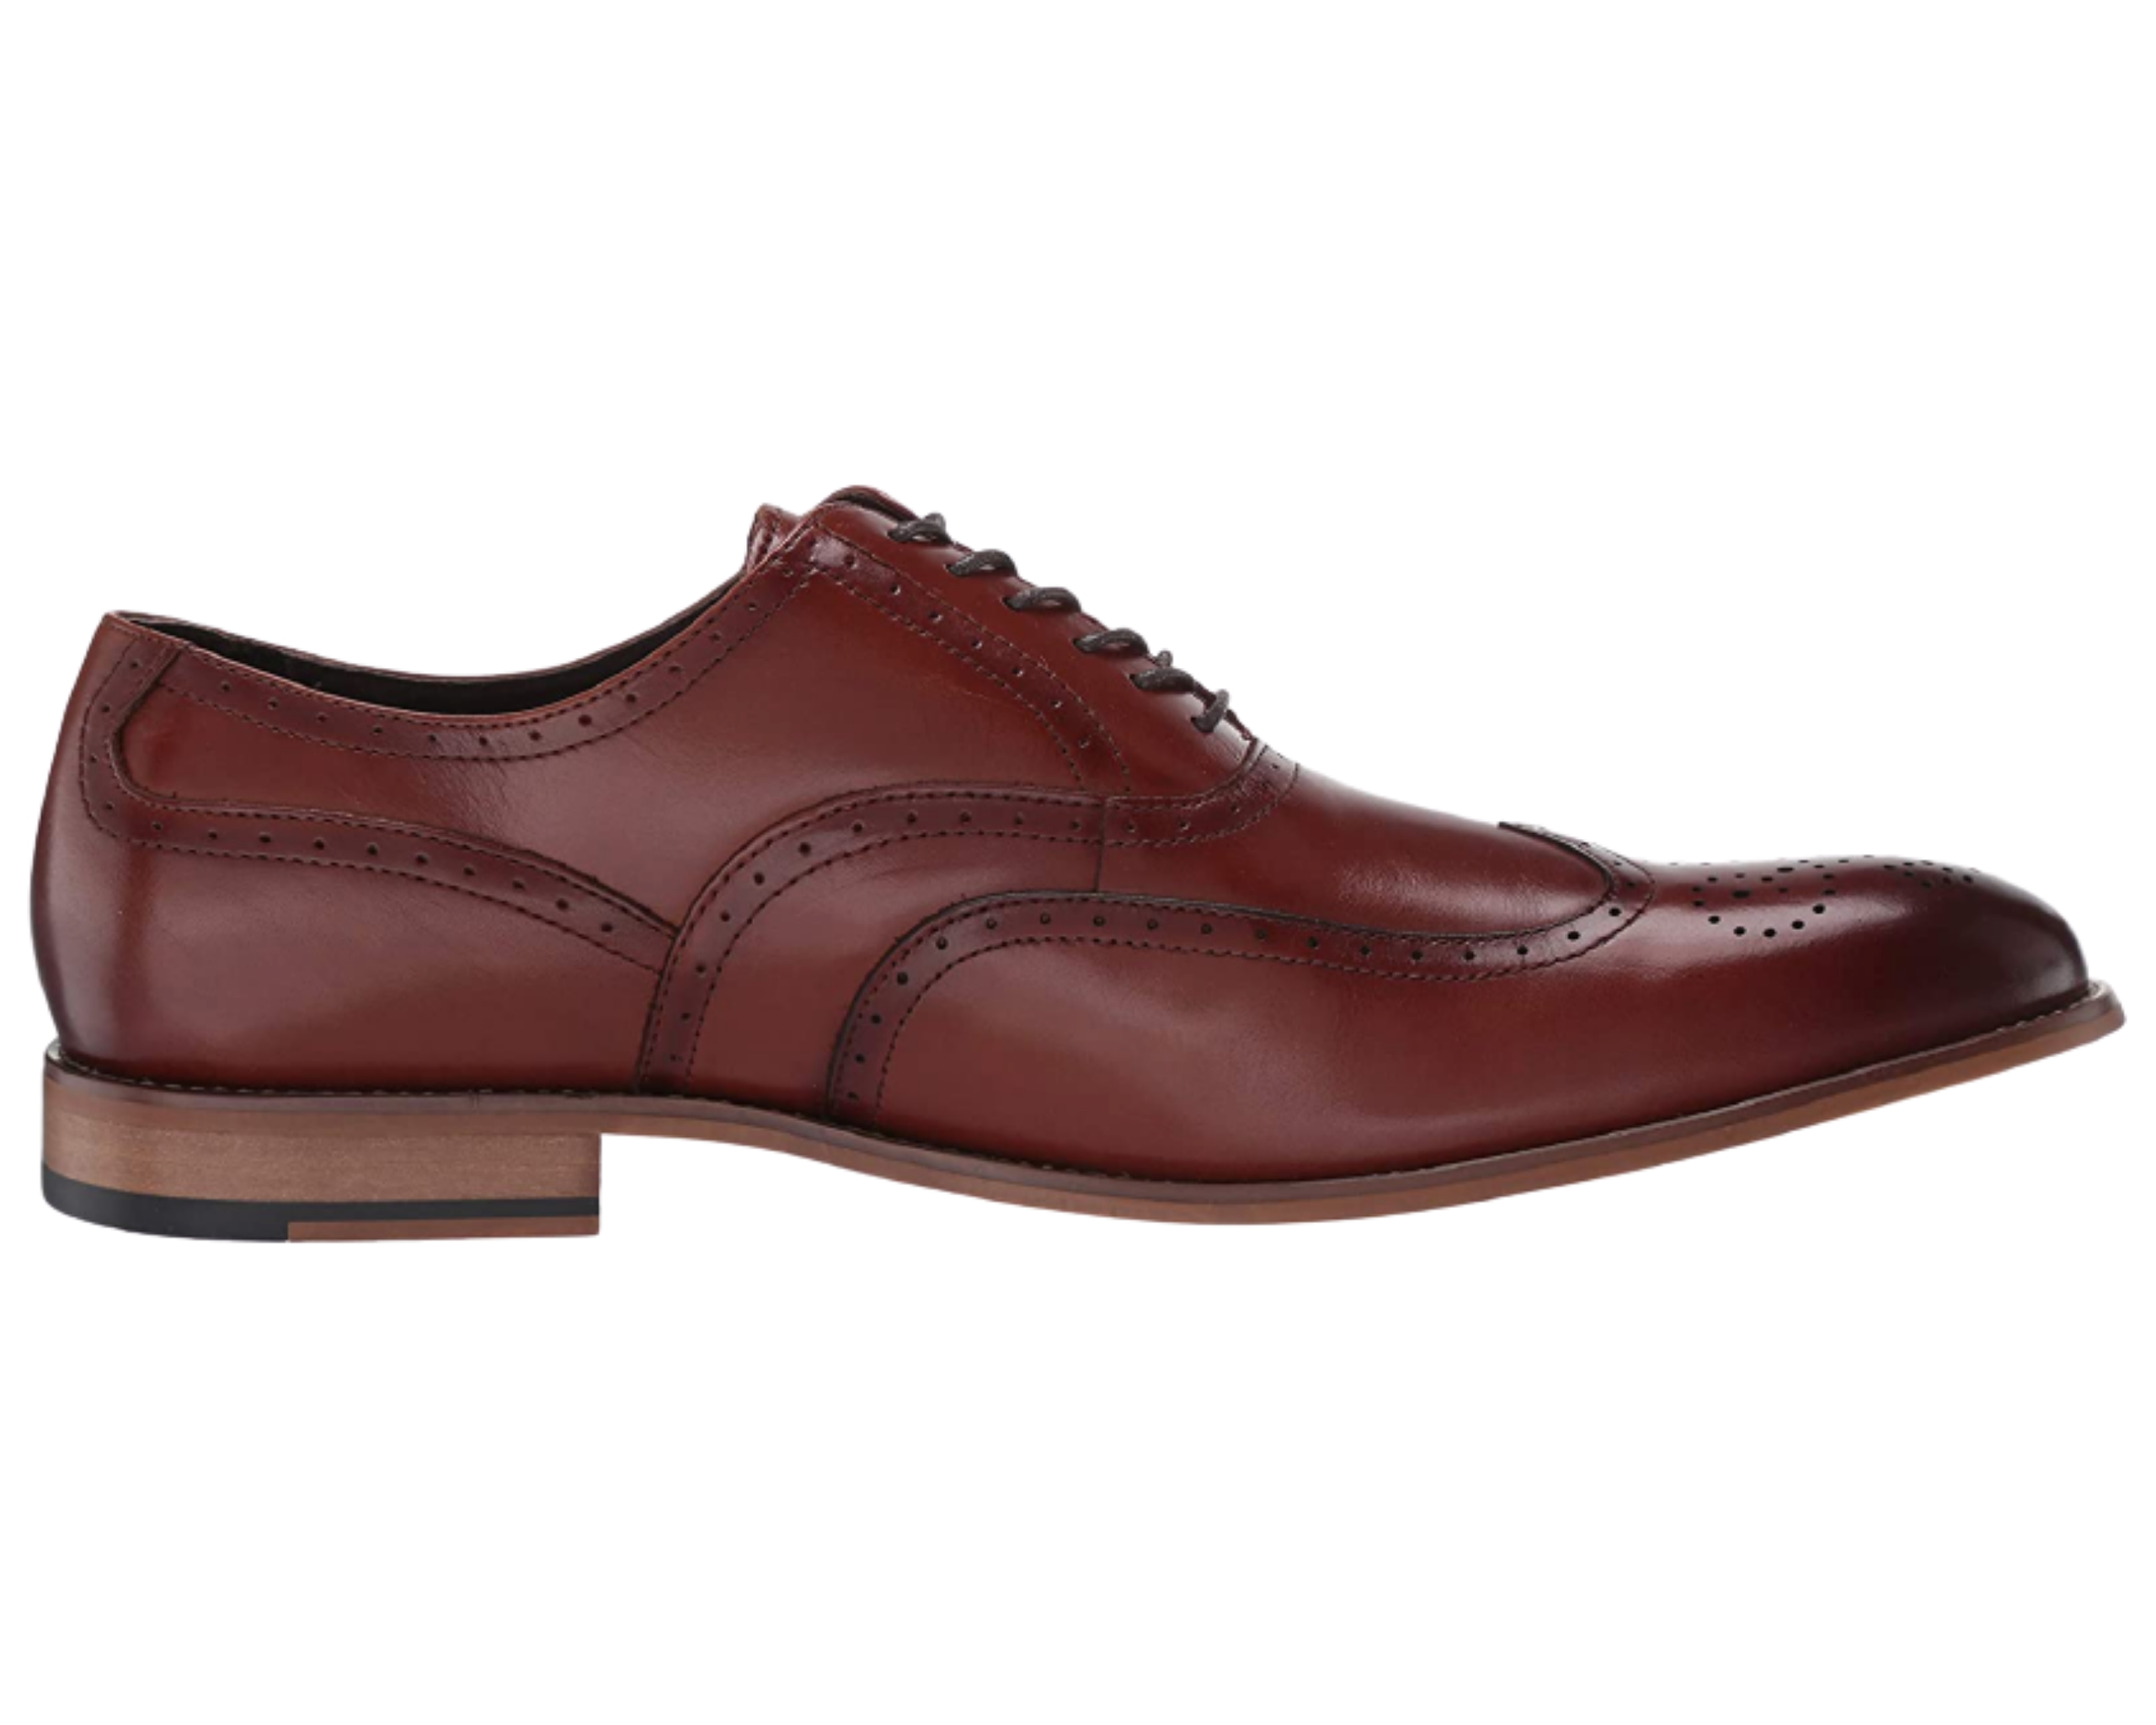 Best brown men's dress shoes